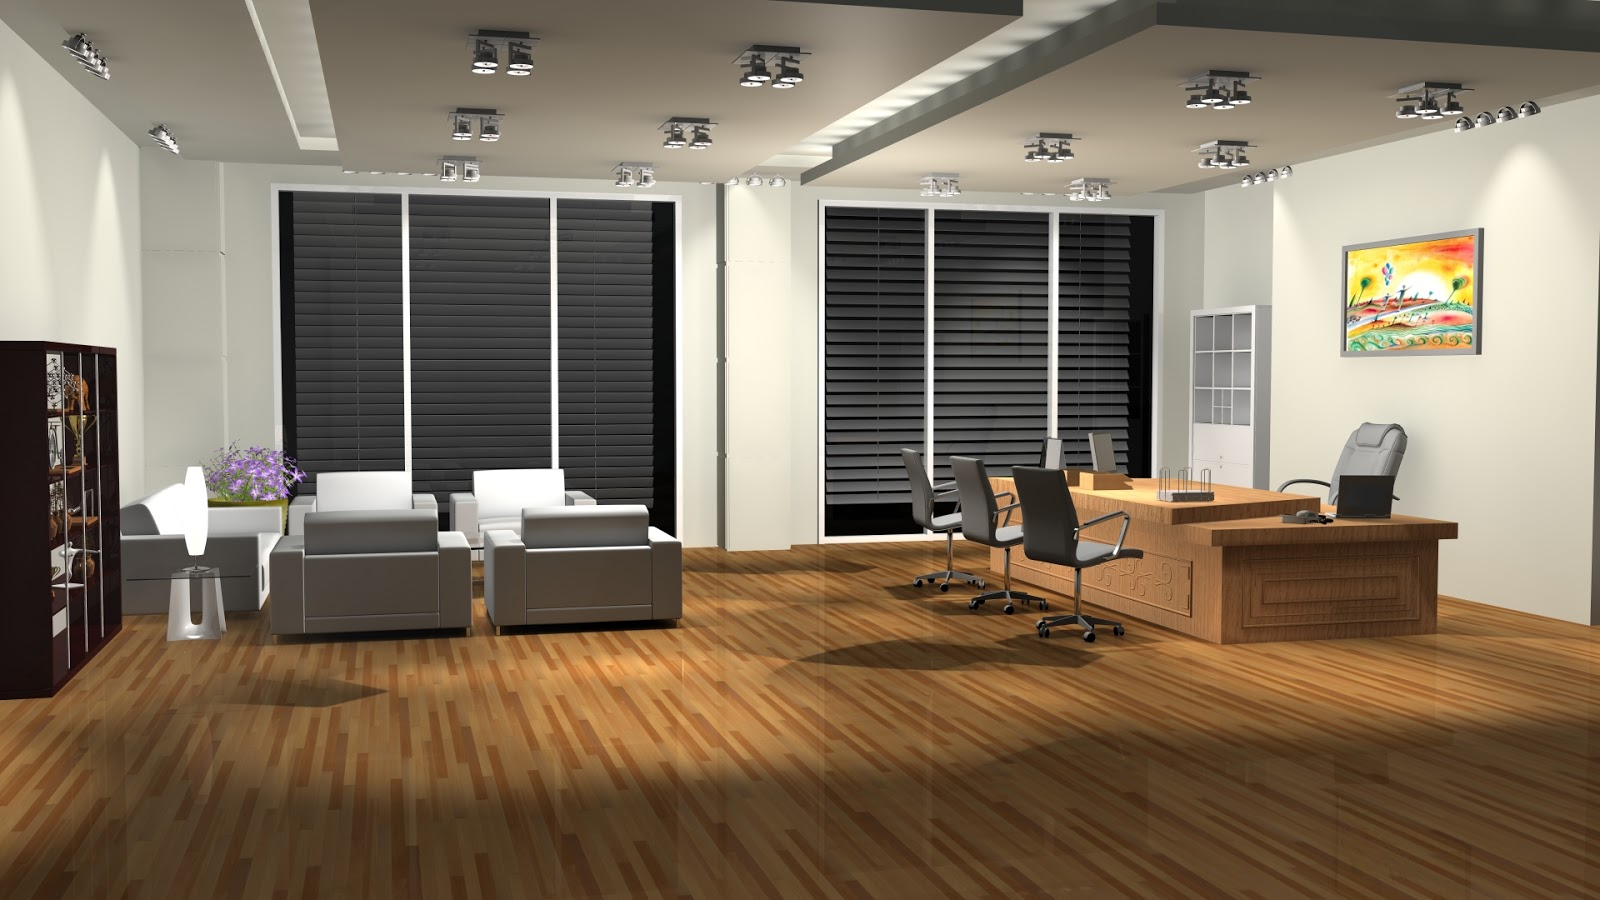 Sajid designs office room 3d interior design 3ds max for As interior design